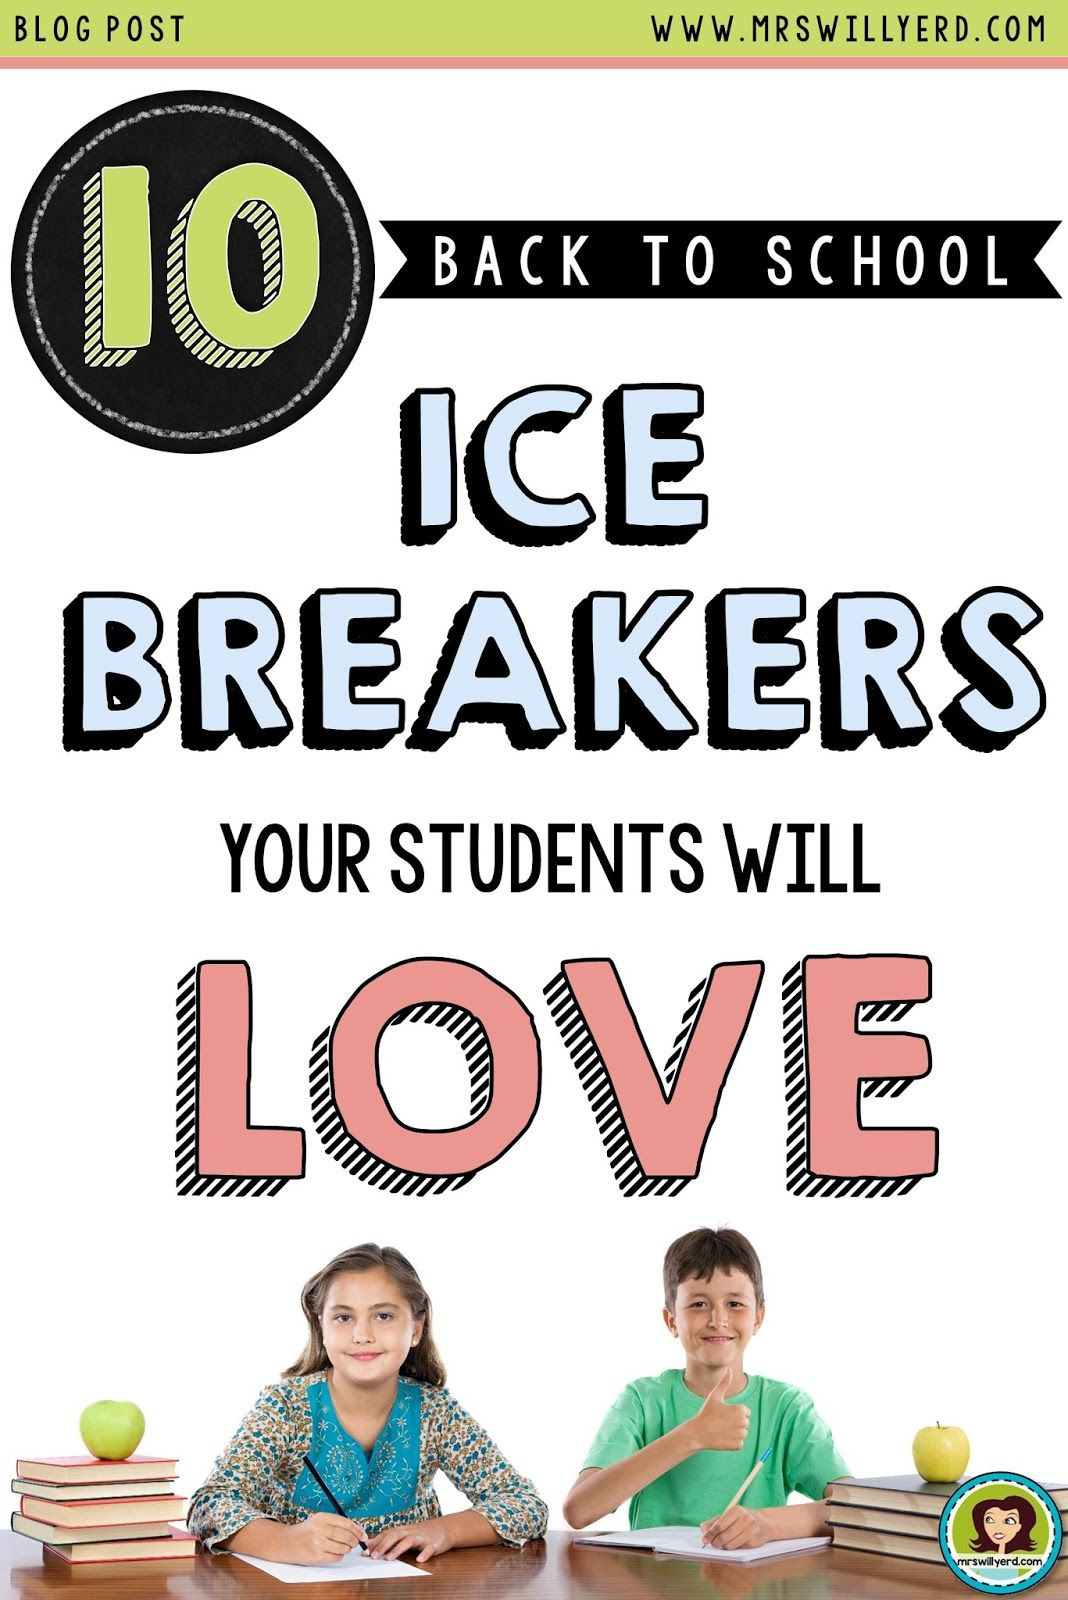 10 Back To School Ice Breakers Your Students Will Love